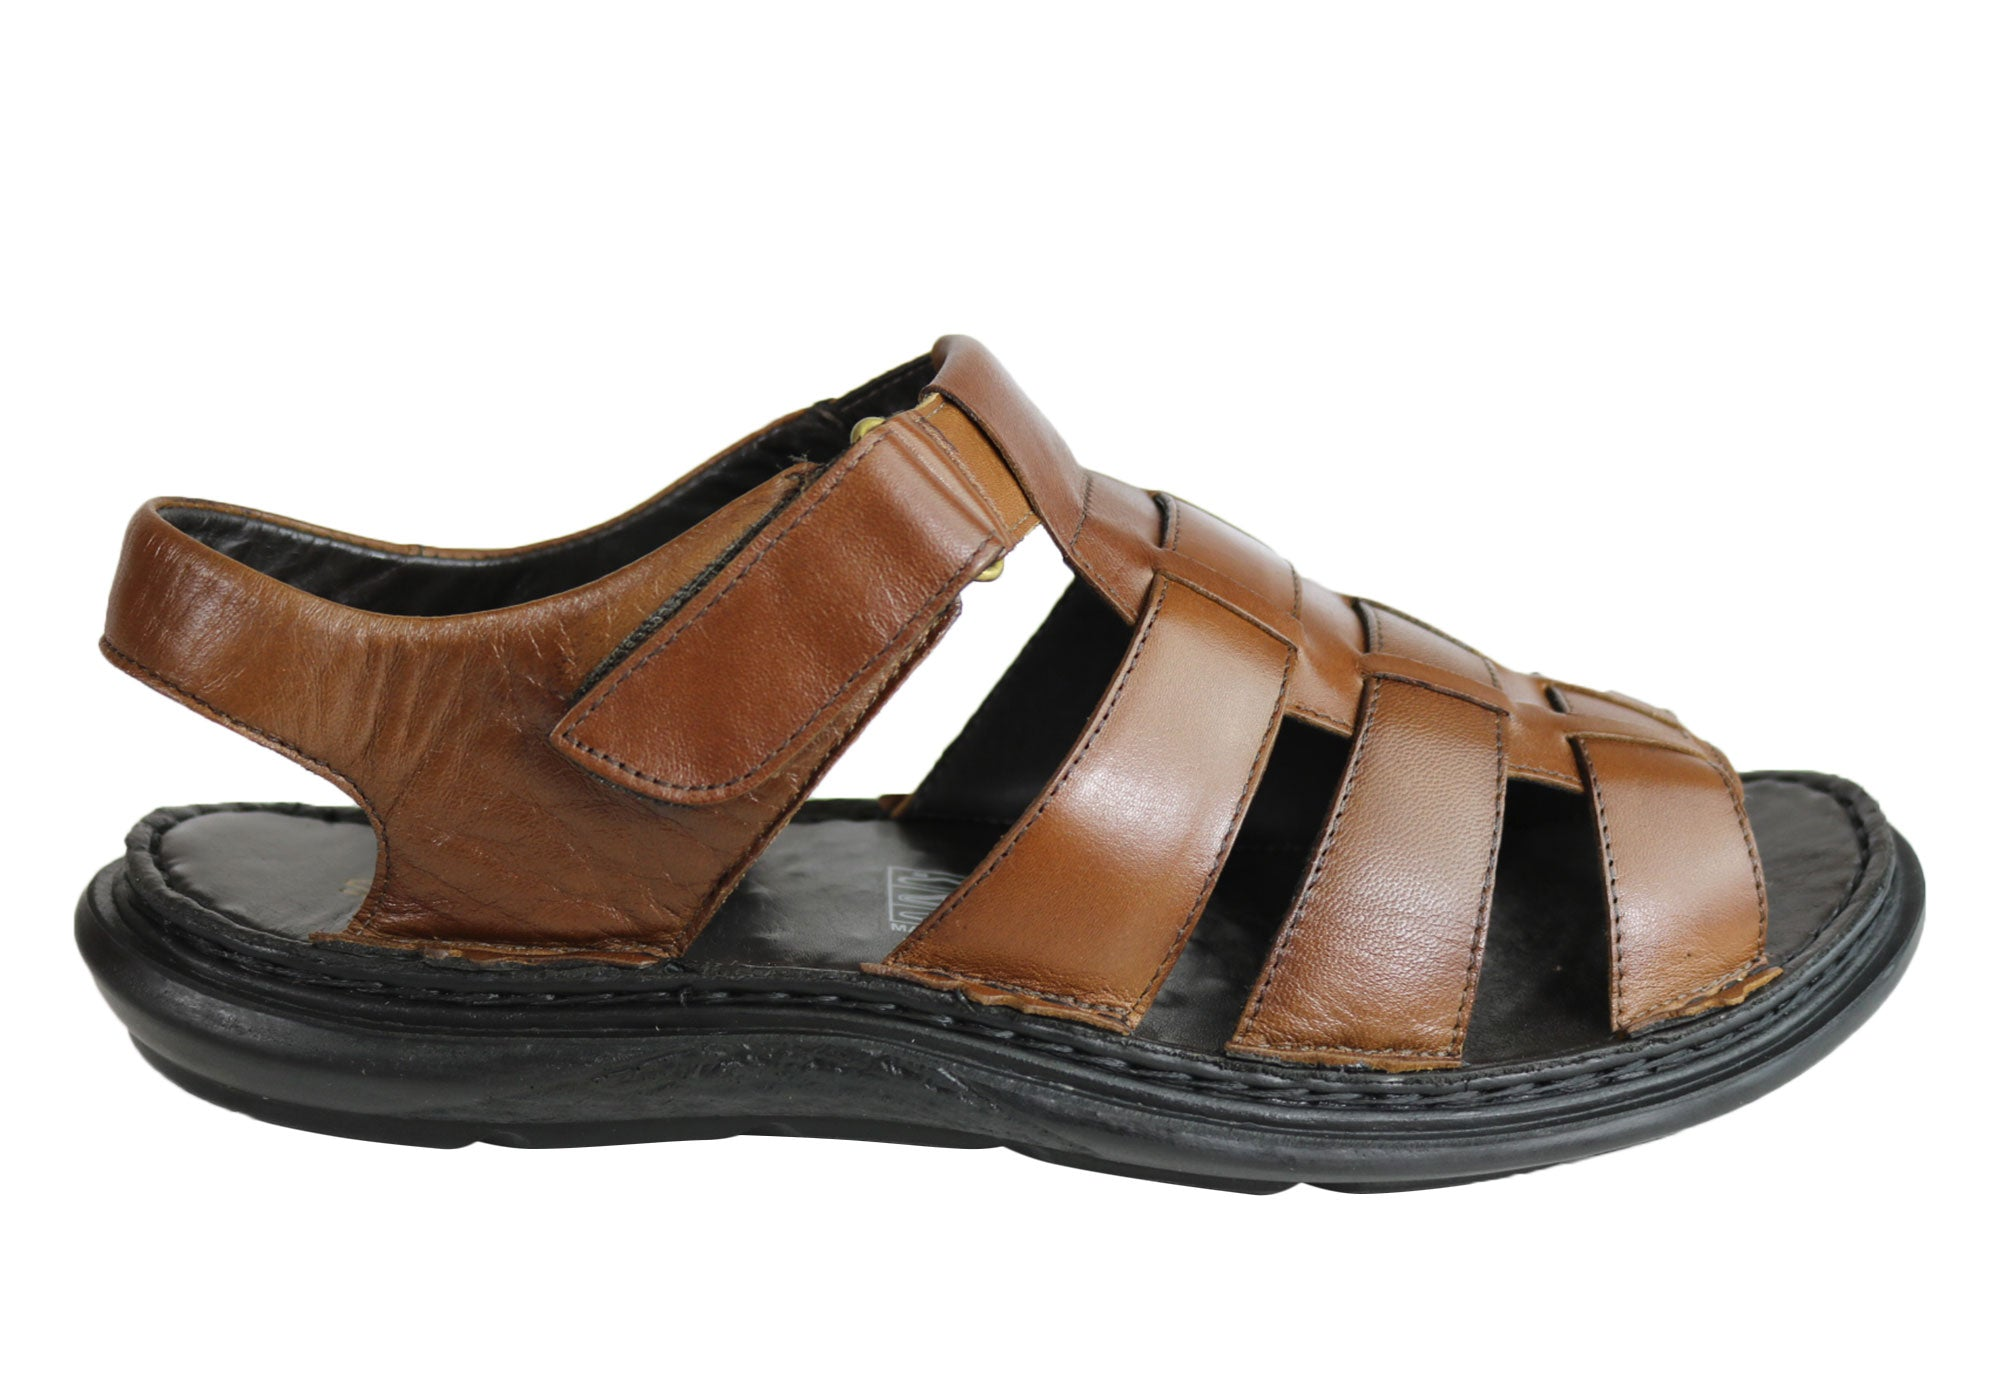 9b2240489b61 ... Mens Leather Comfortable Cushioned Sandals Made In Brazil. Brown ...